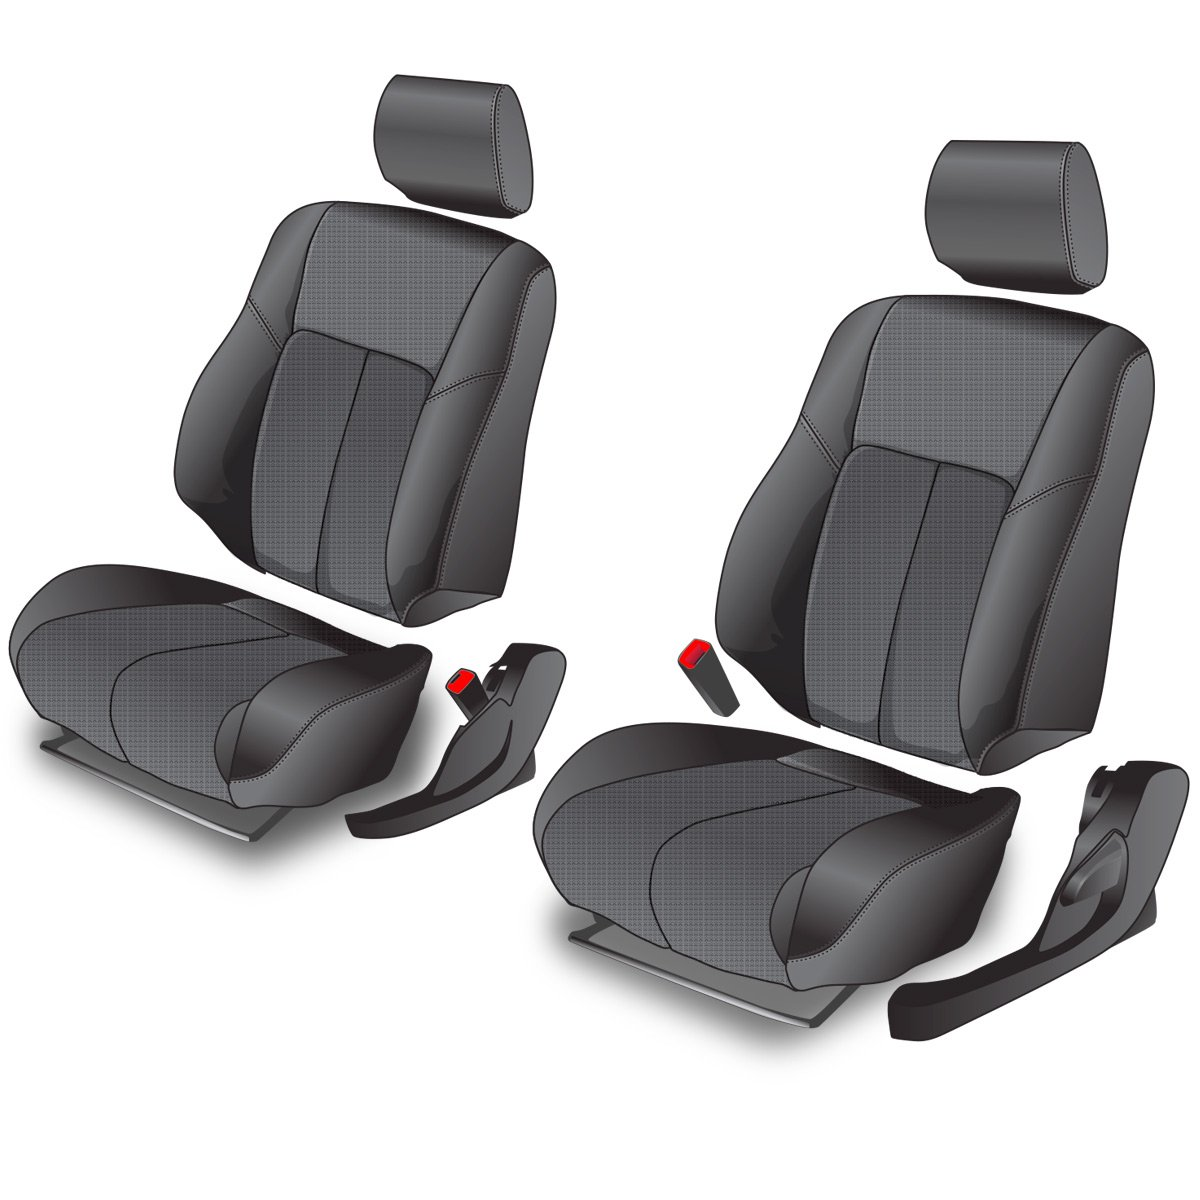 Clazzio 245811blk Black Leather Front Row Seat Cover for Toyota Rav4 Sports//Limited